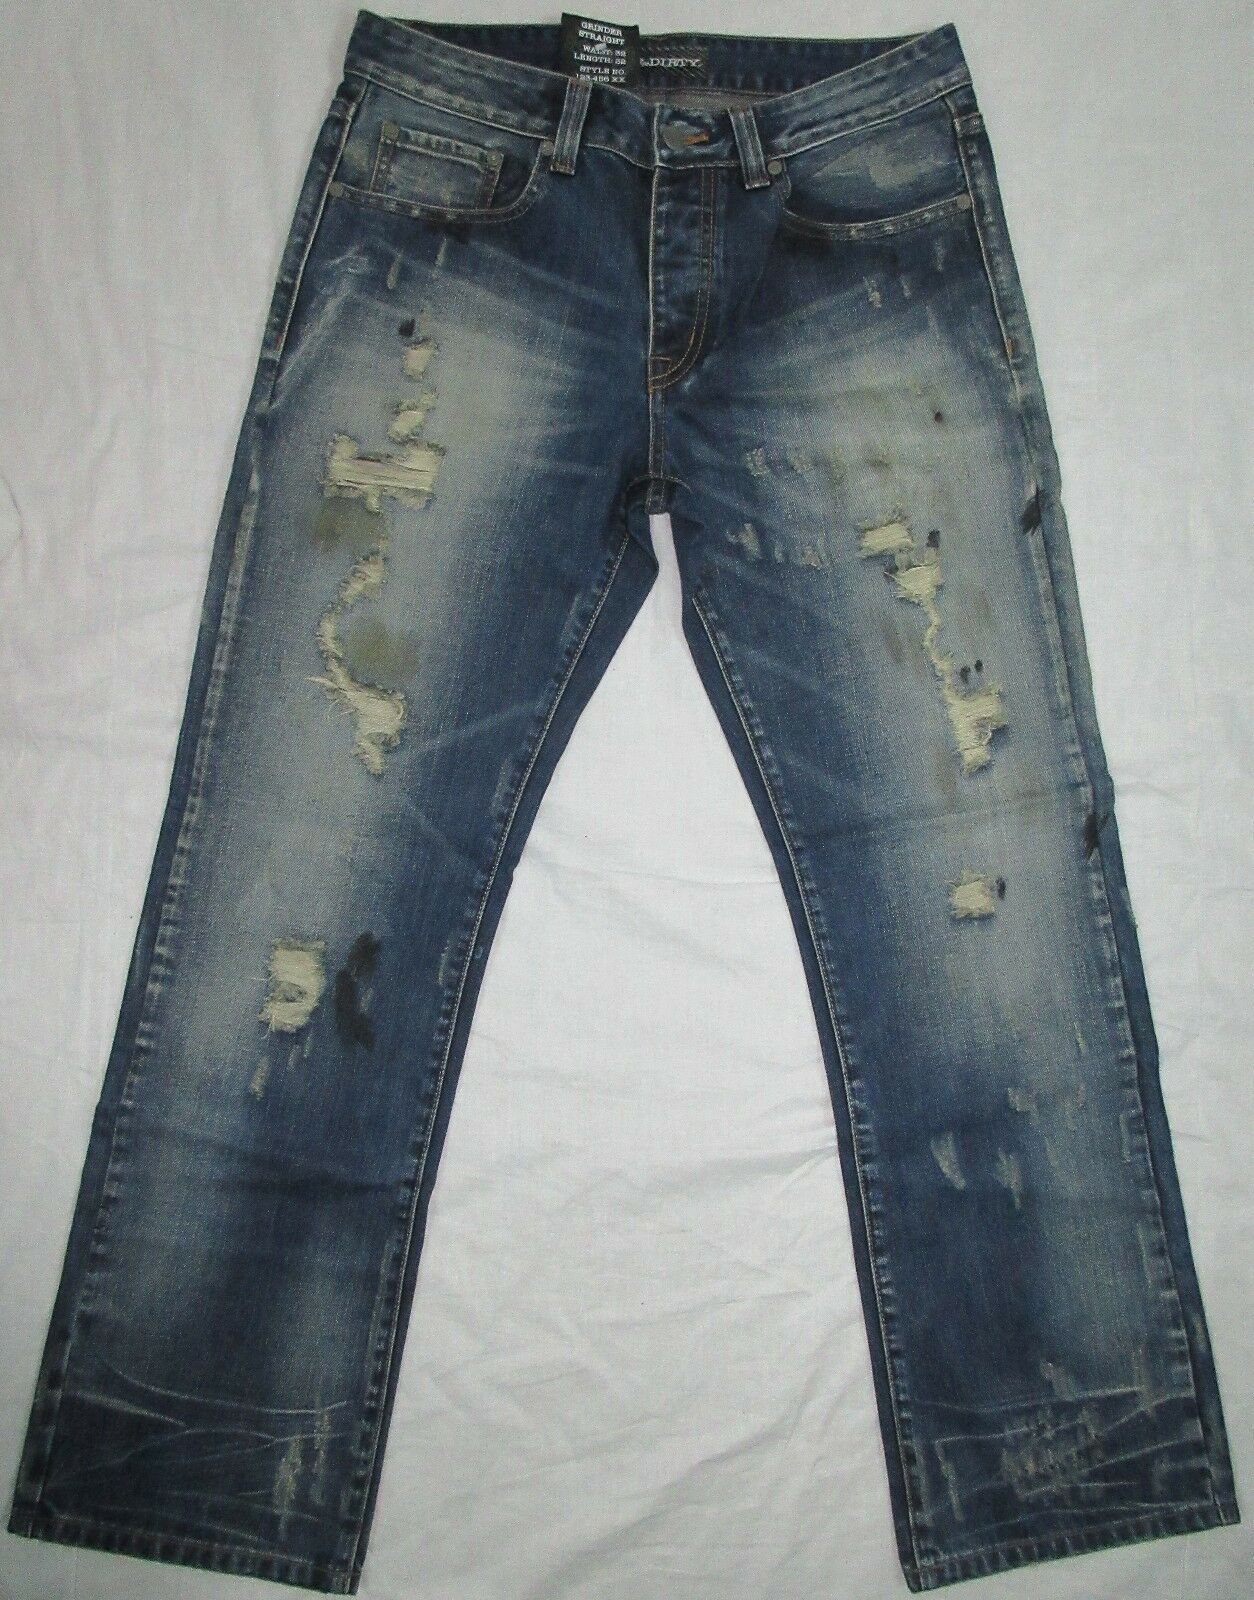 RAW & DIRTY DISTRESSED STRAIGHT FIT JEANS SIZE 32